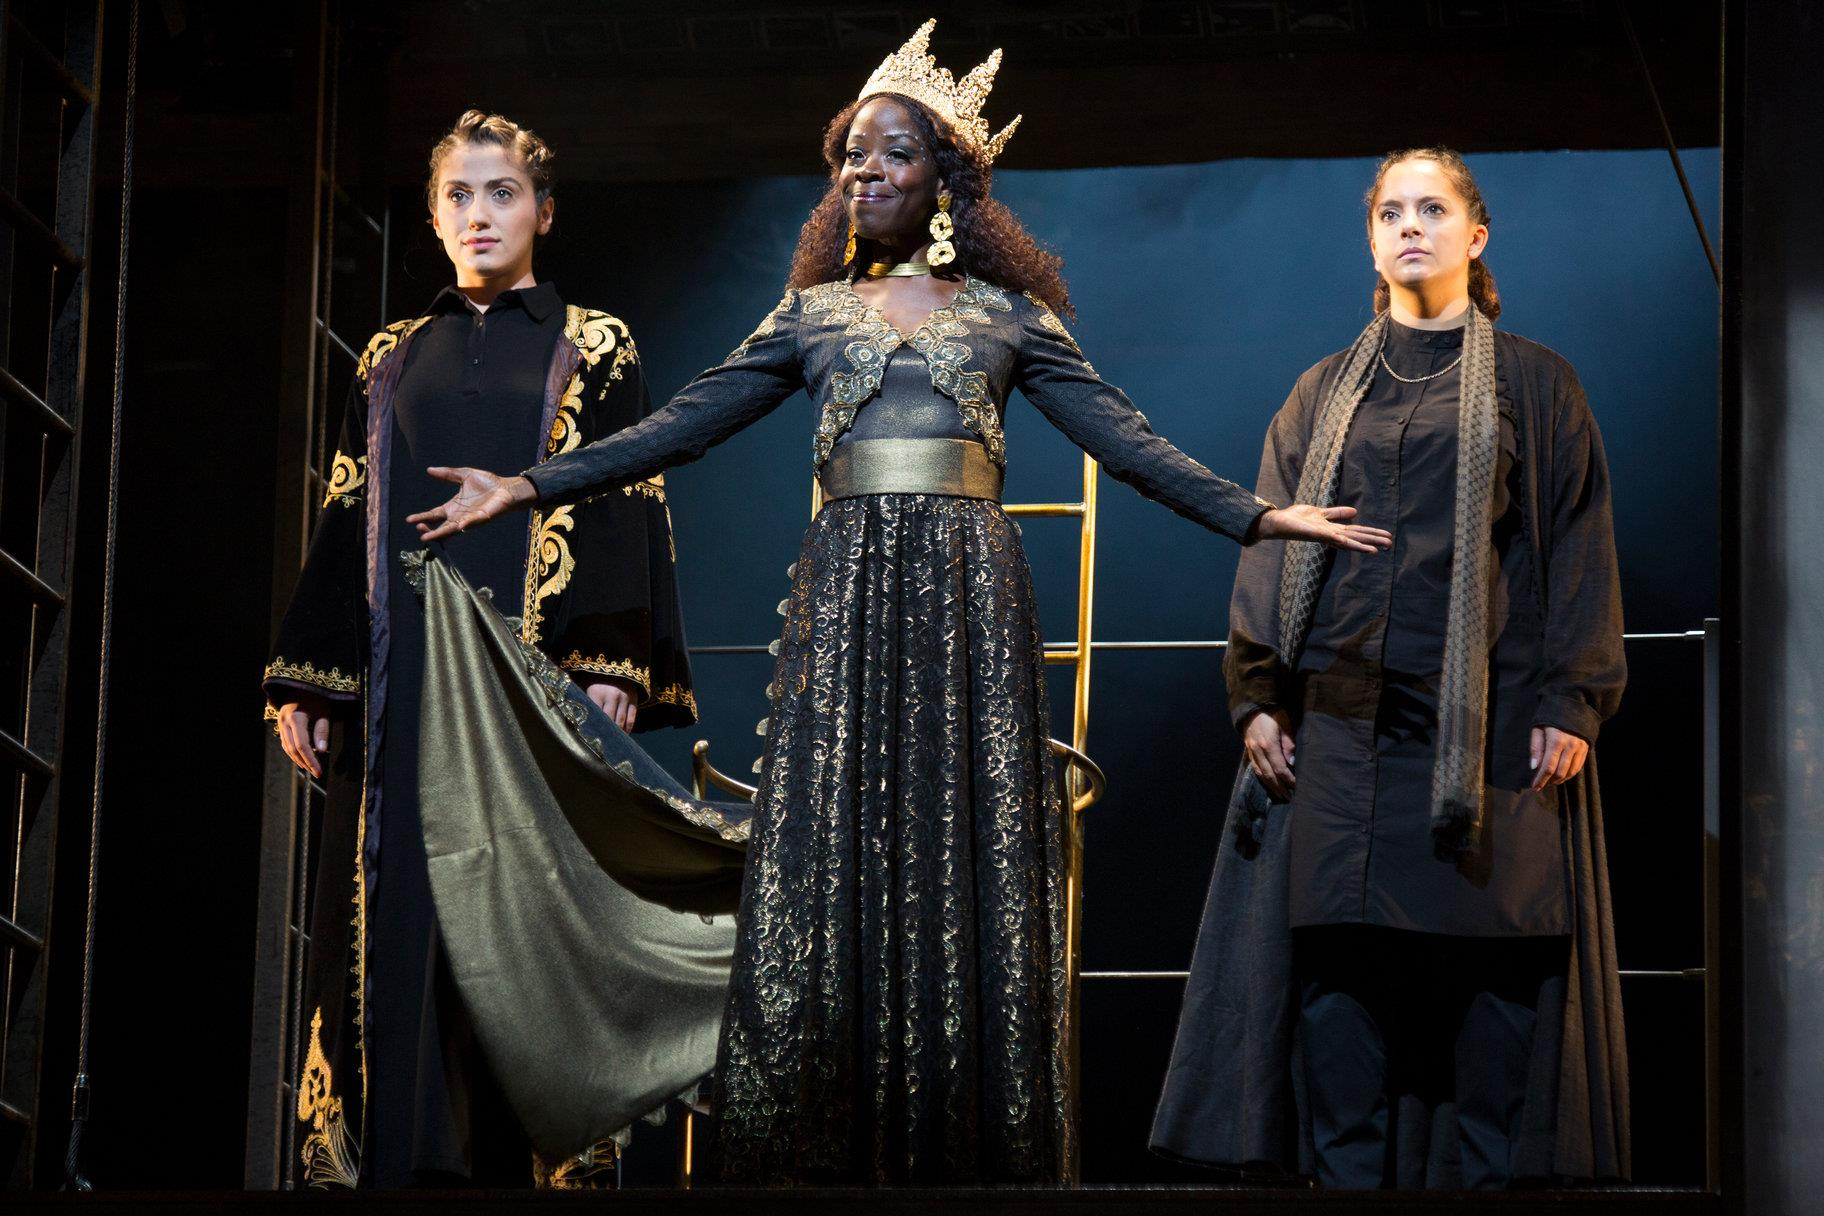 © Ellie Kurttz, RSC (Vivienne Smith as Ebea, Debbie Korley as Zabina, and Shamia Chalabi as the Turkish Messenger)